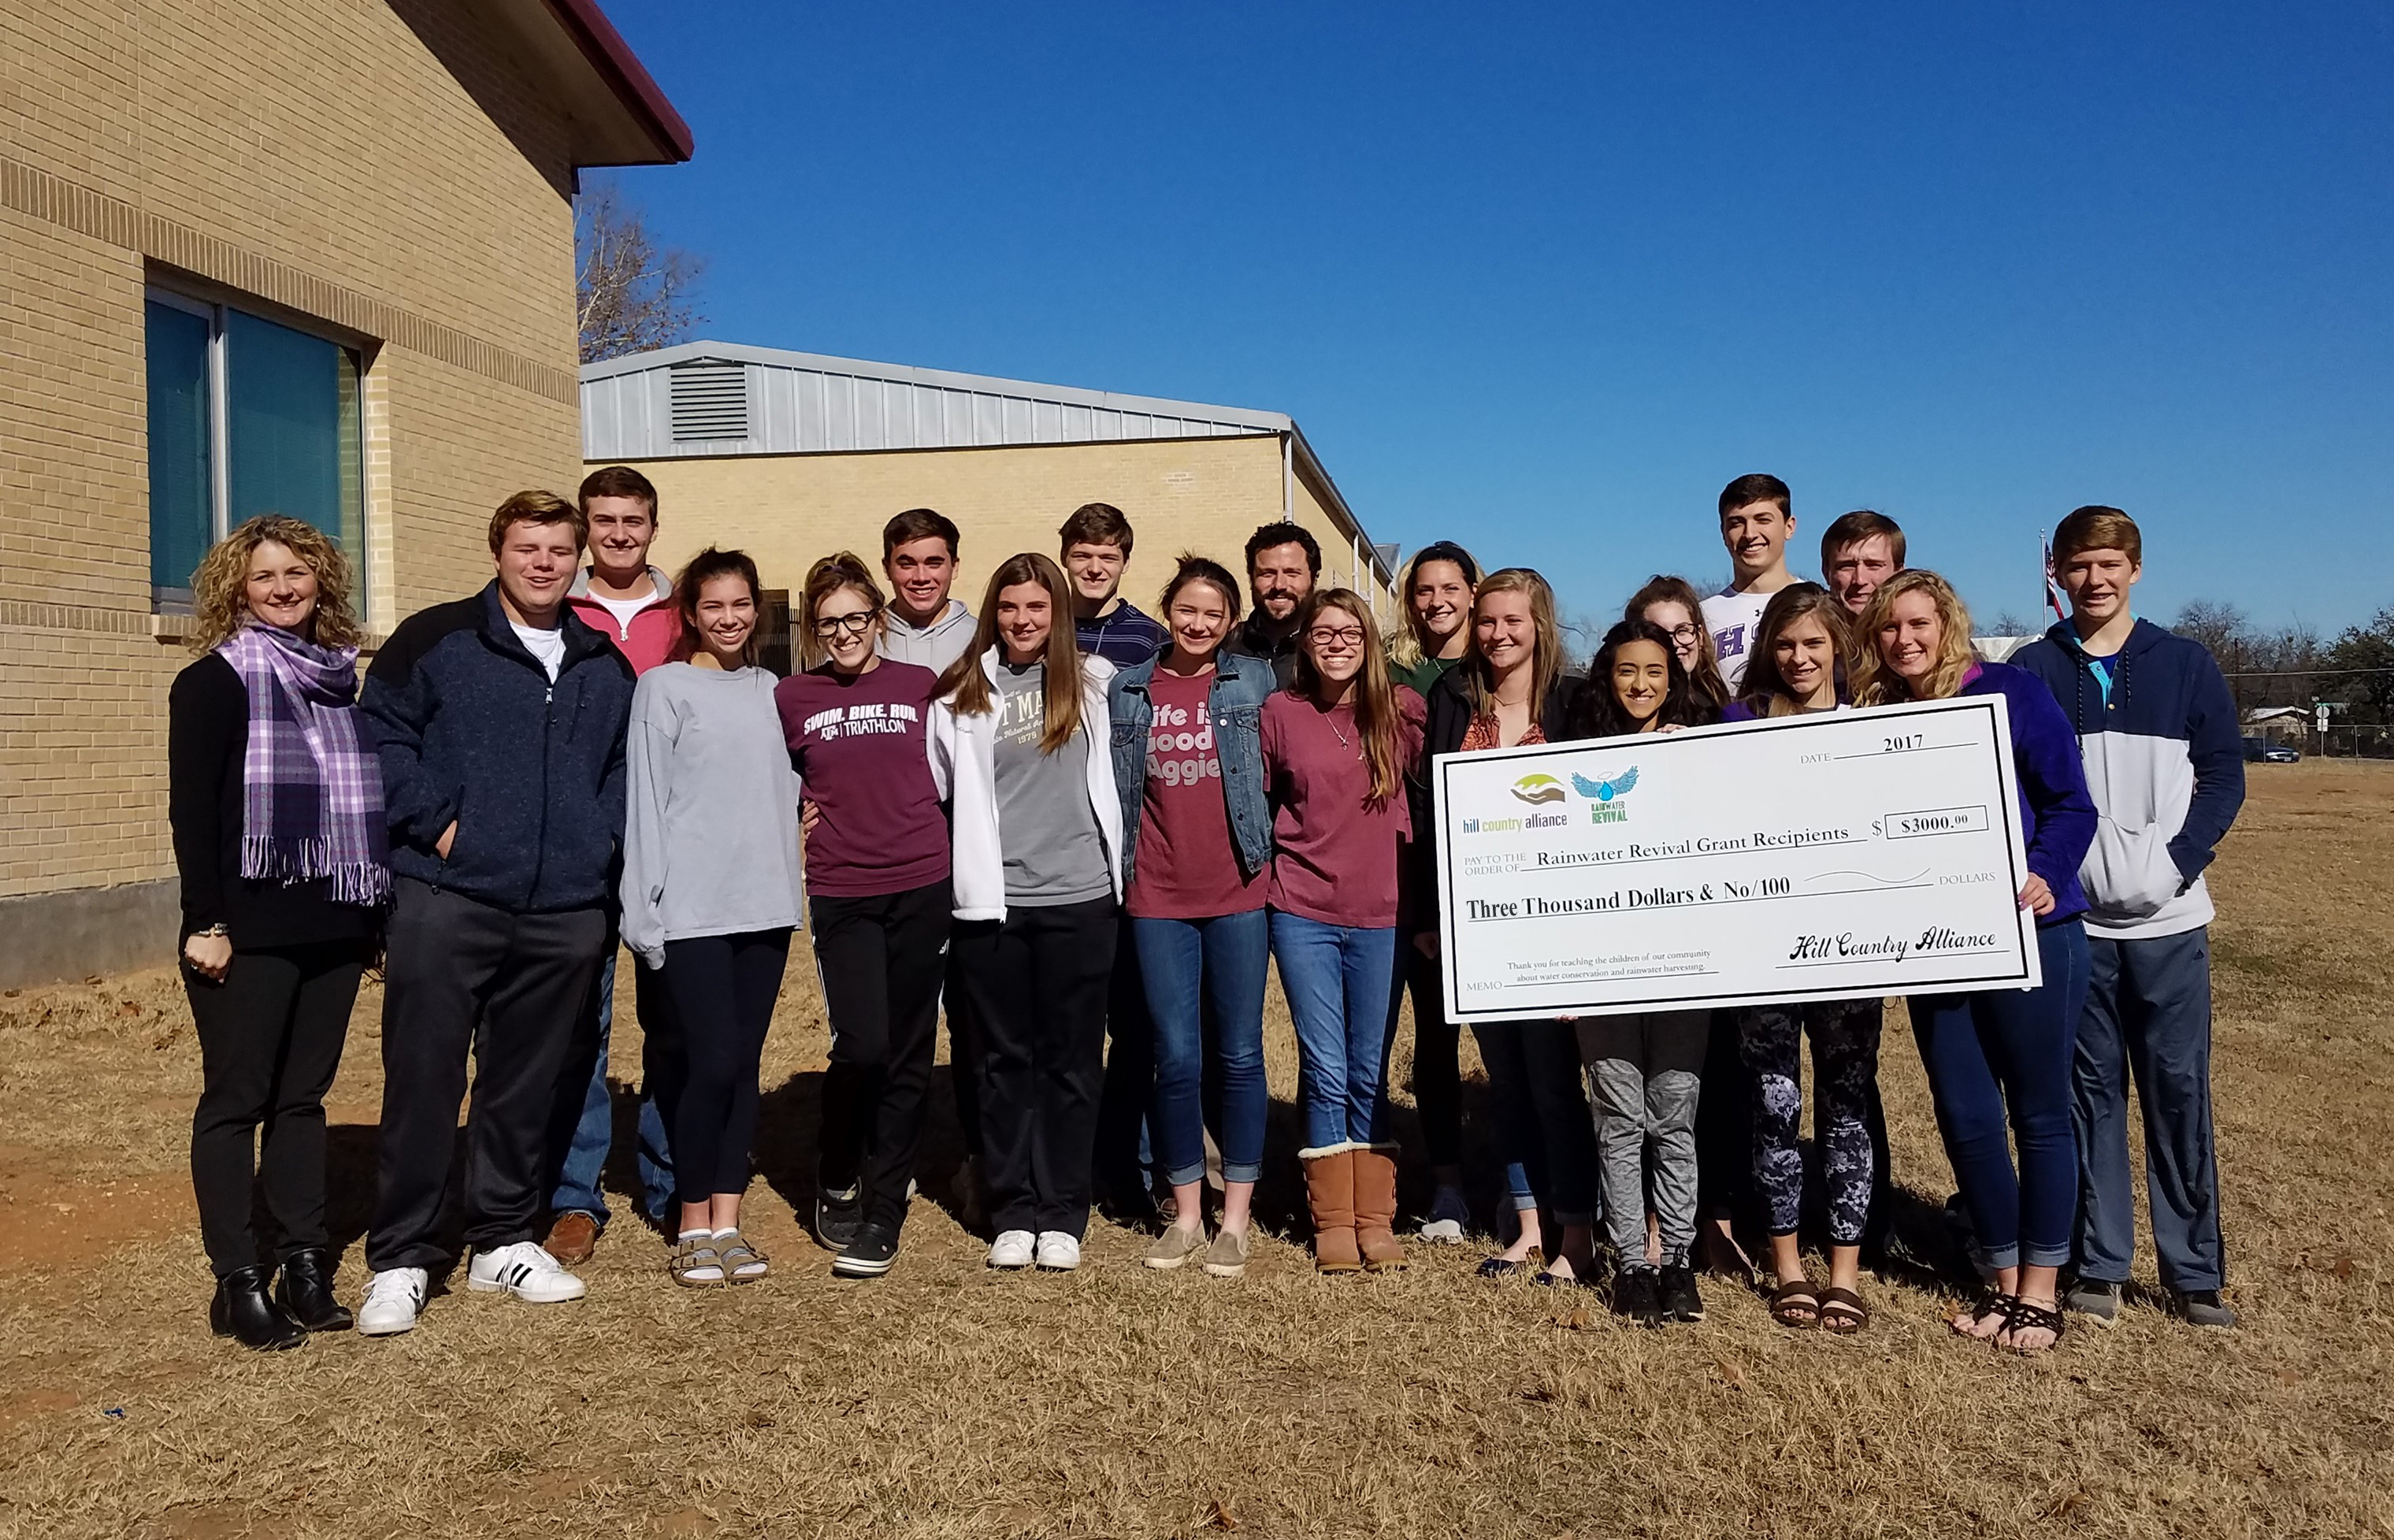 Schools in Mason and Center Point Win Rainwater Revival Grants to Fund Water Conservation Projects